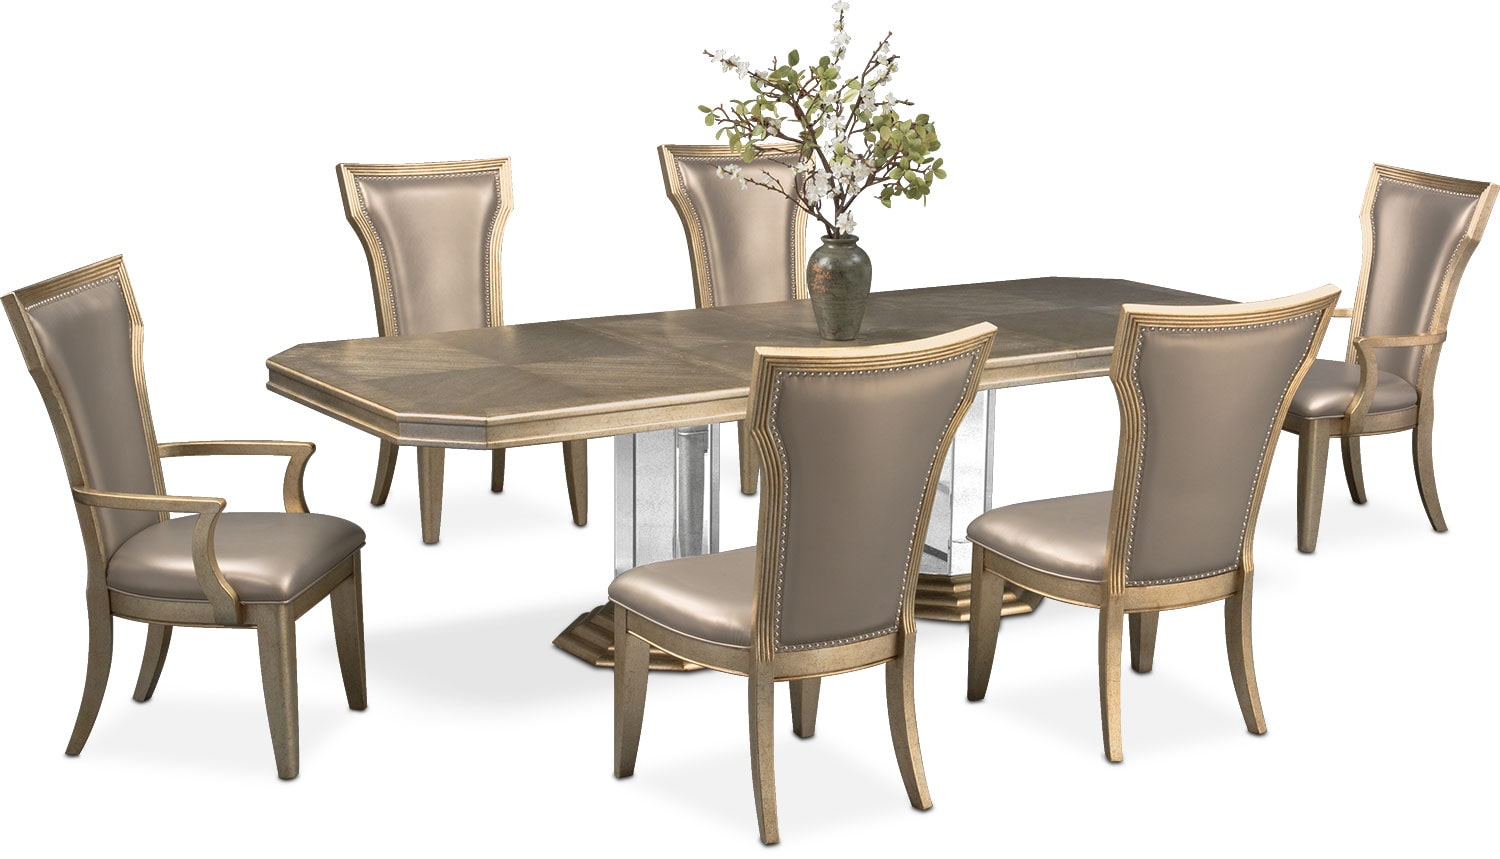 Dining Room Furniture - Angelina Dining Table, 2 Arm Chairs and 4 Dining Chairs